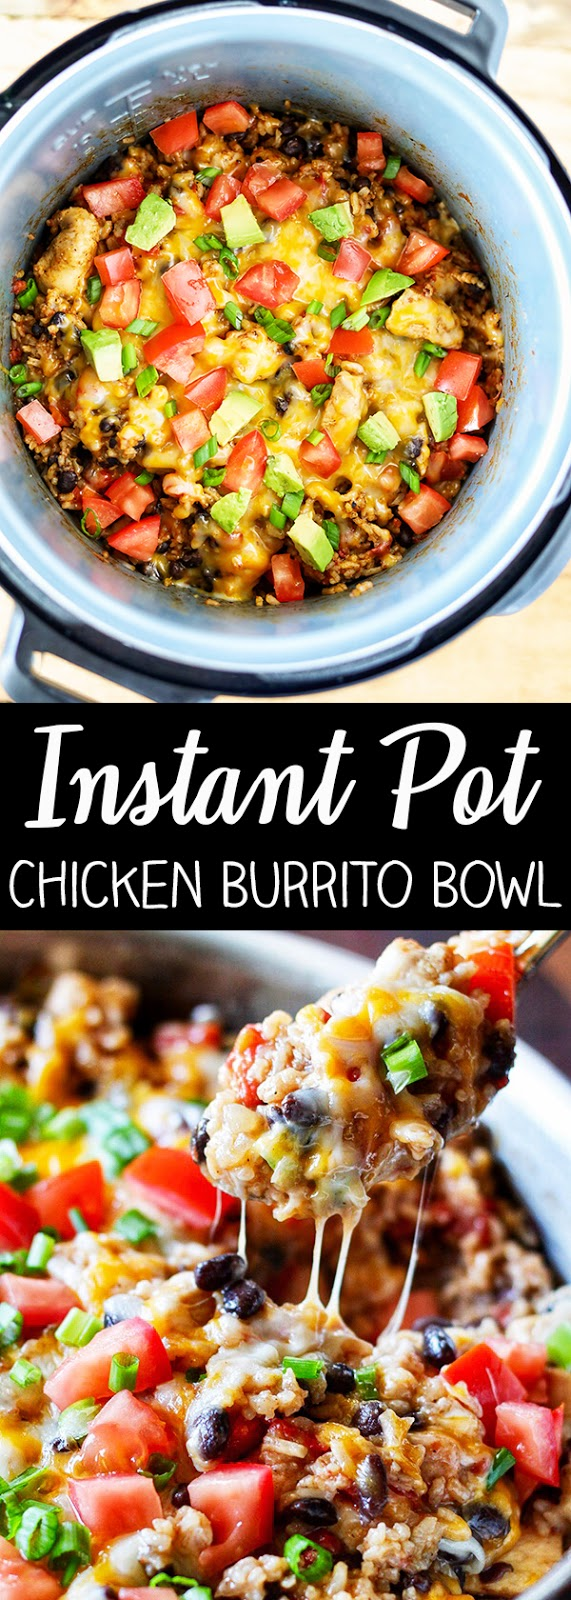 Inspiring Instant Pot Chicken Burrito Bowl